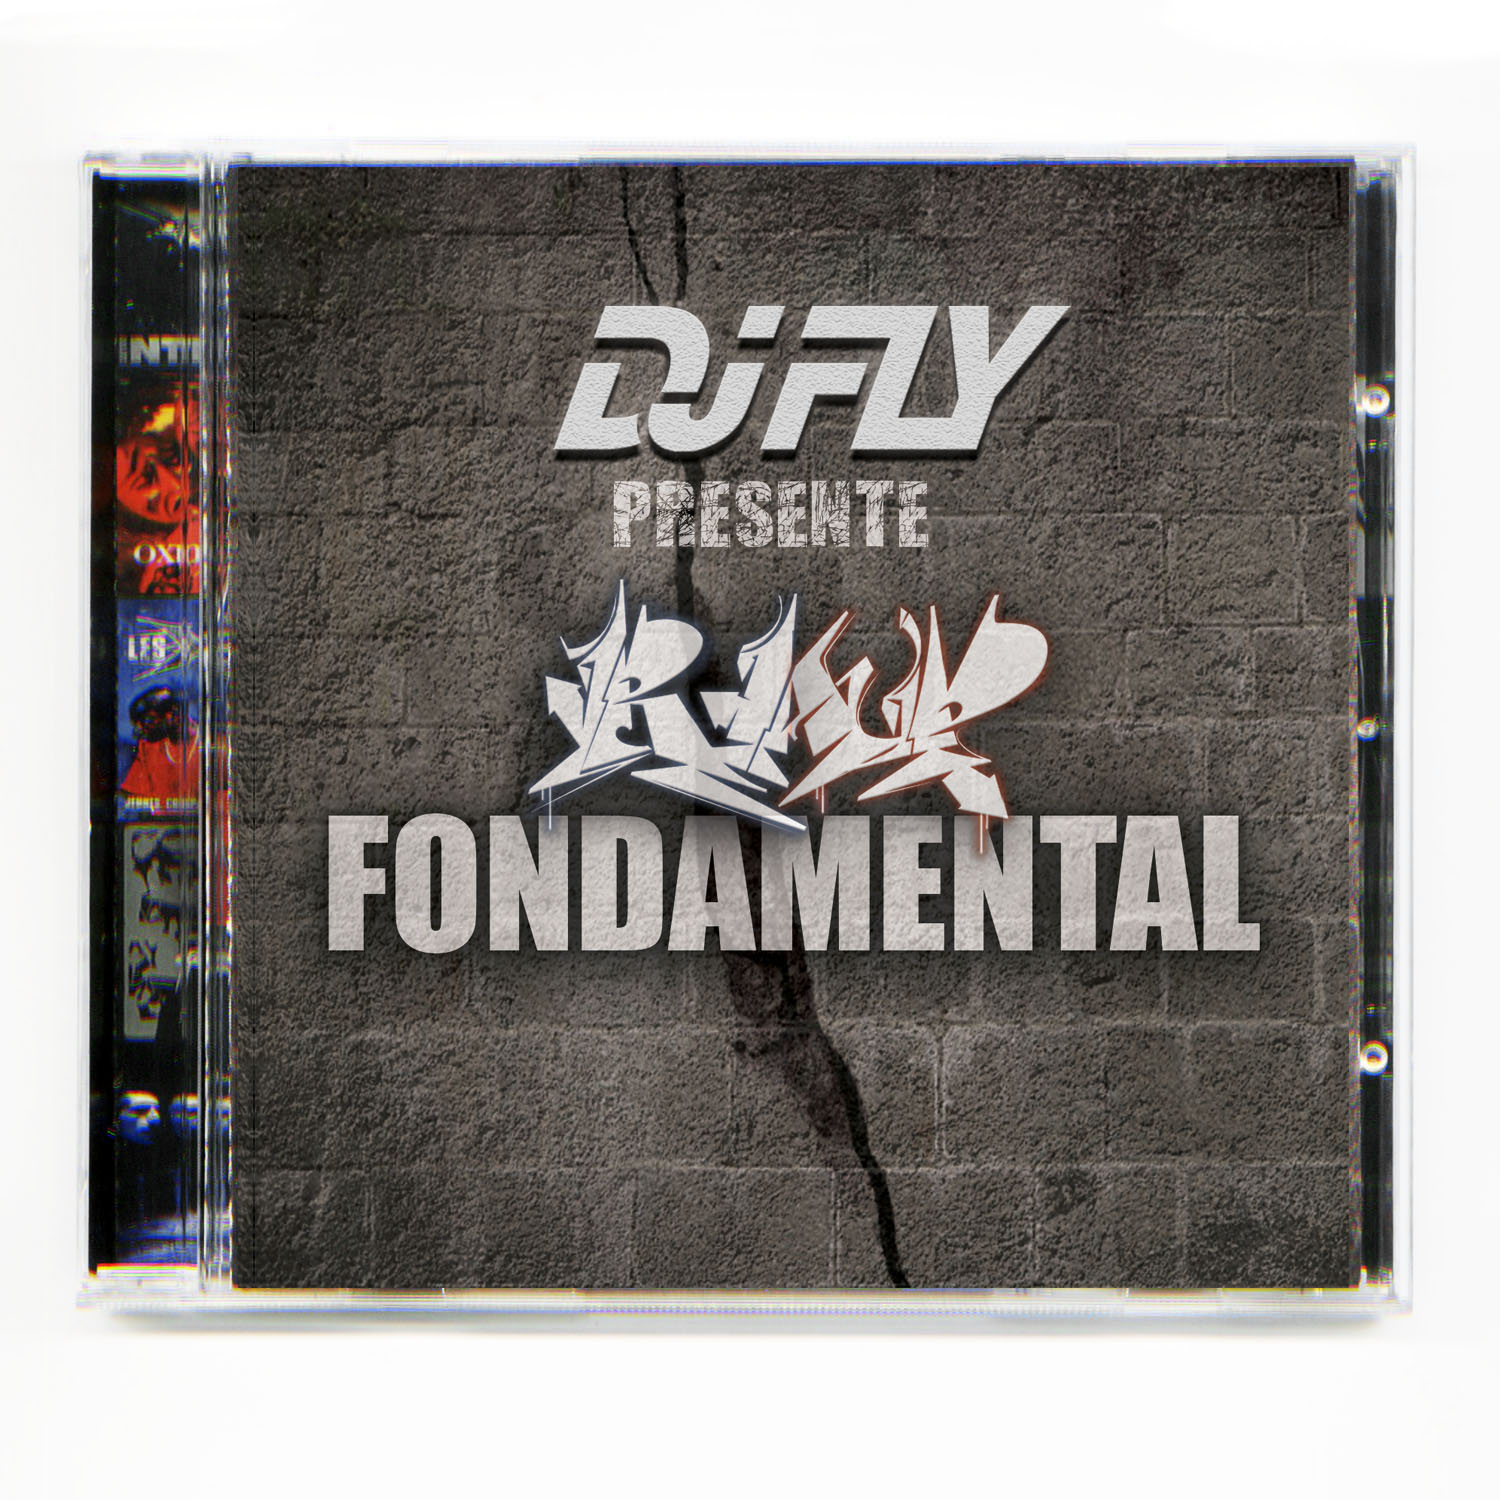 DJ-FLY-Mixtape-Rap-Fondamental-2019-cover